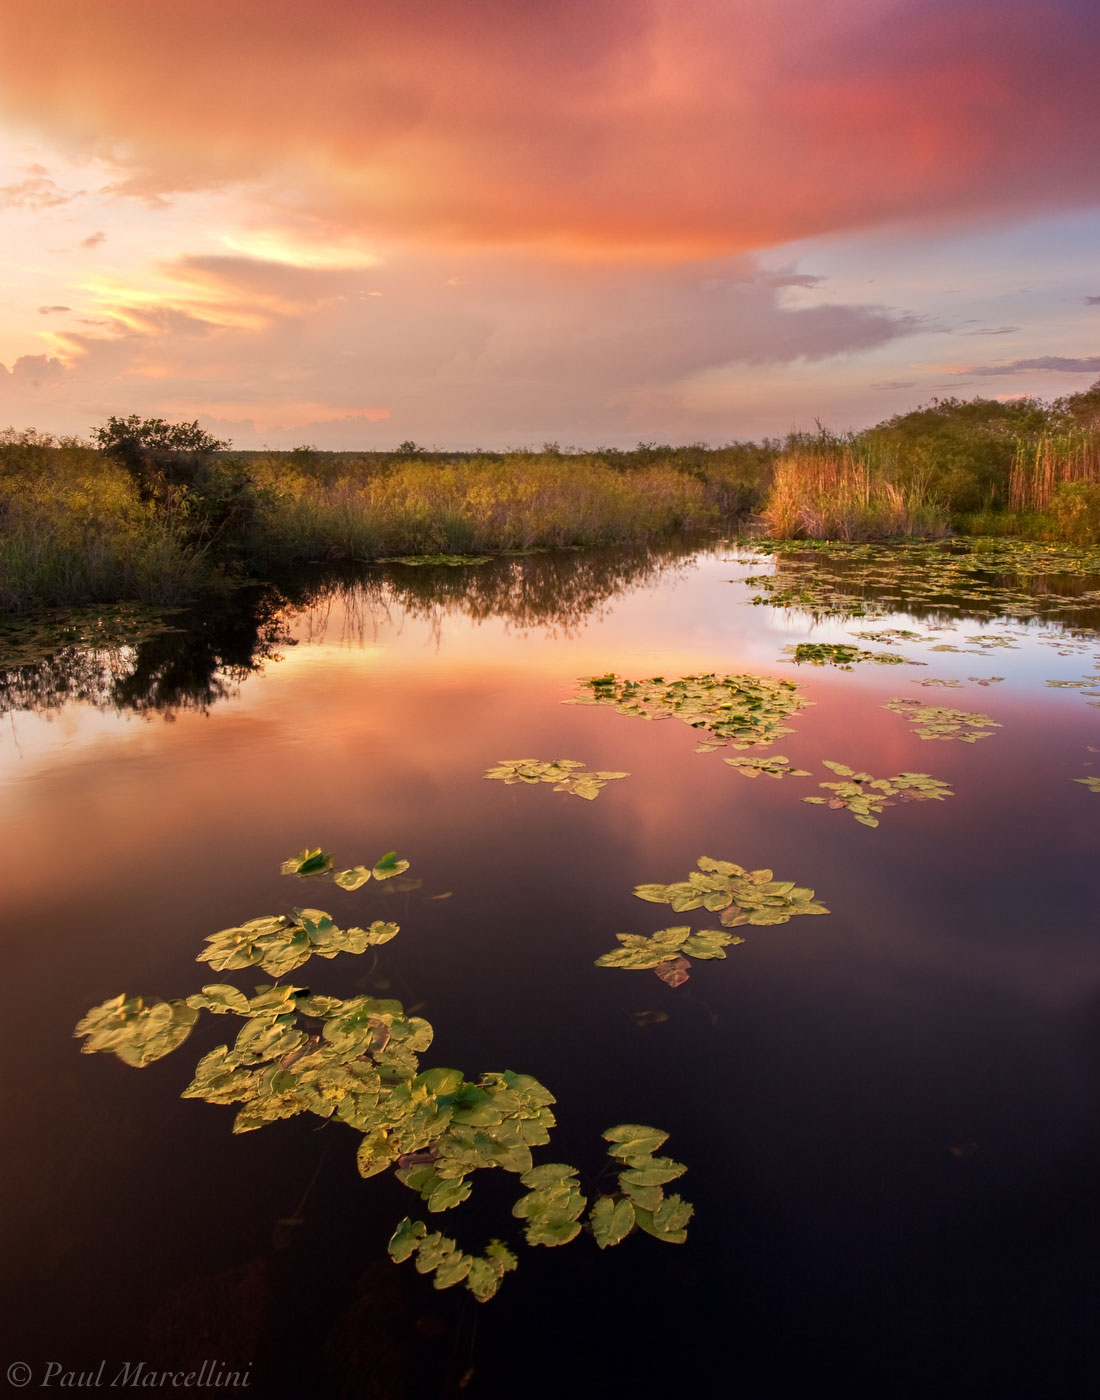 everglades, sunset, spadder dock, nuphar luteum, pond, Florida, nature, photography, photo